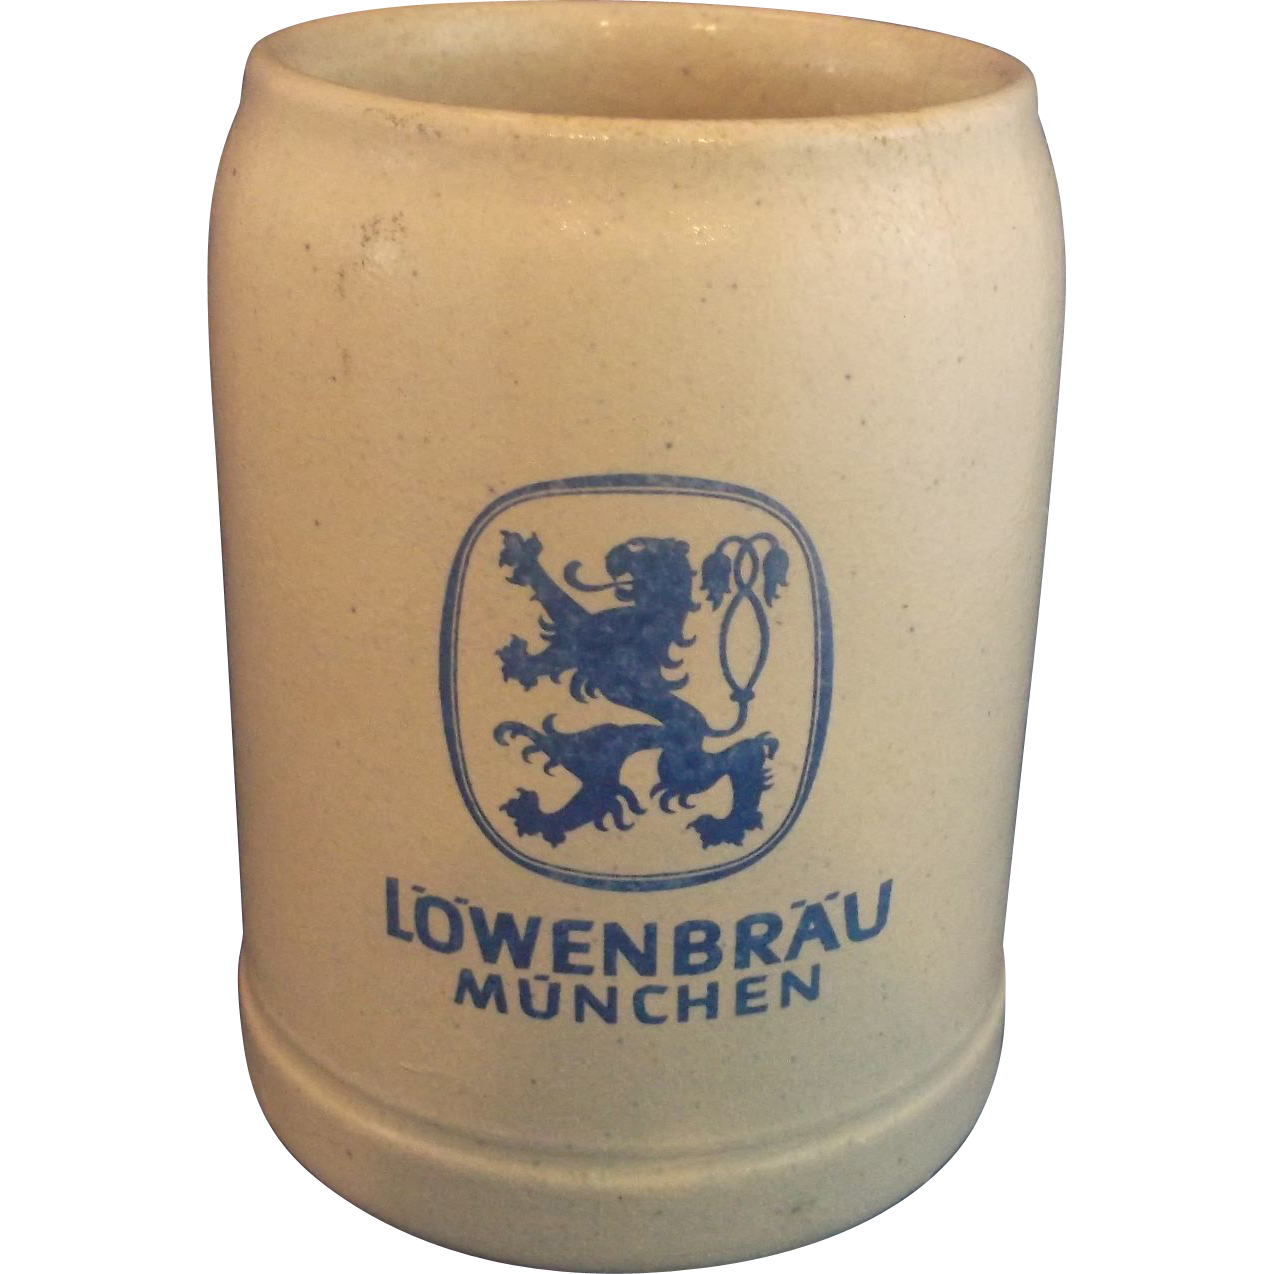 Lowenbrau Munchen .5L Salt Glazed Beer Stein Germany